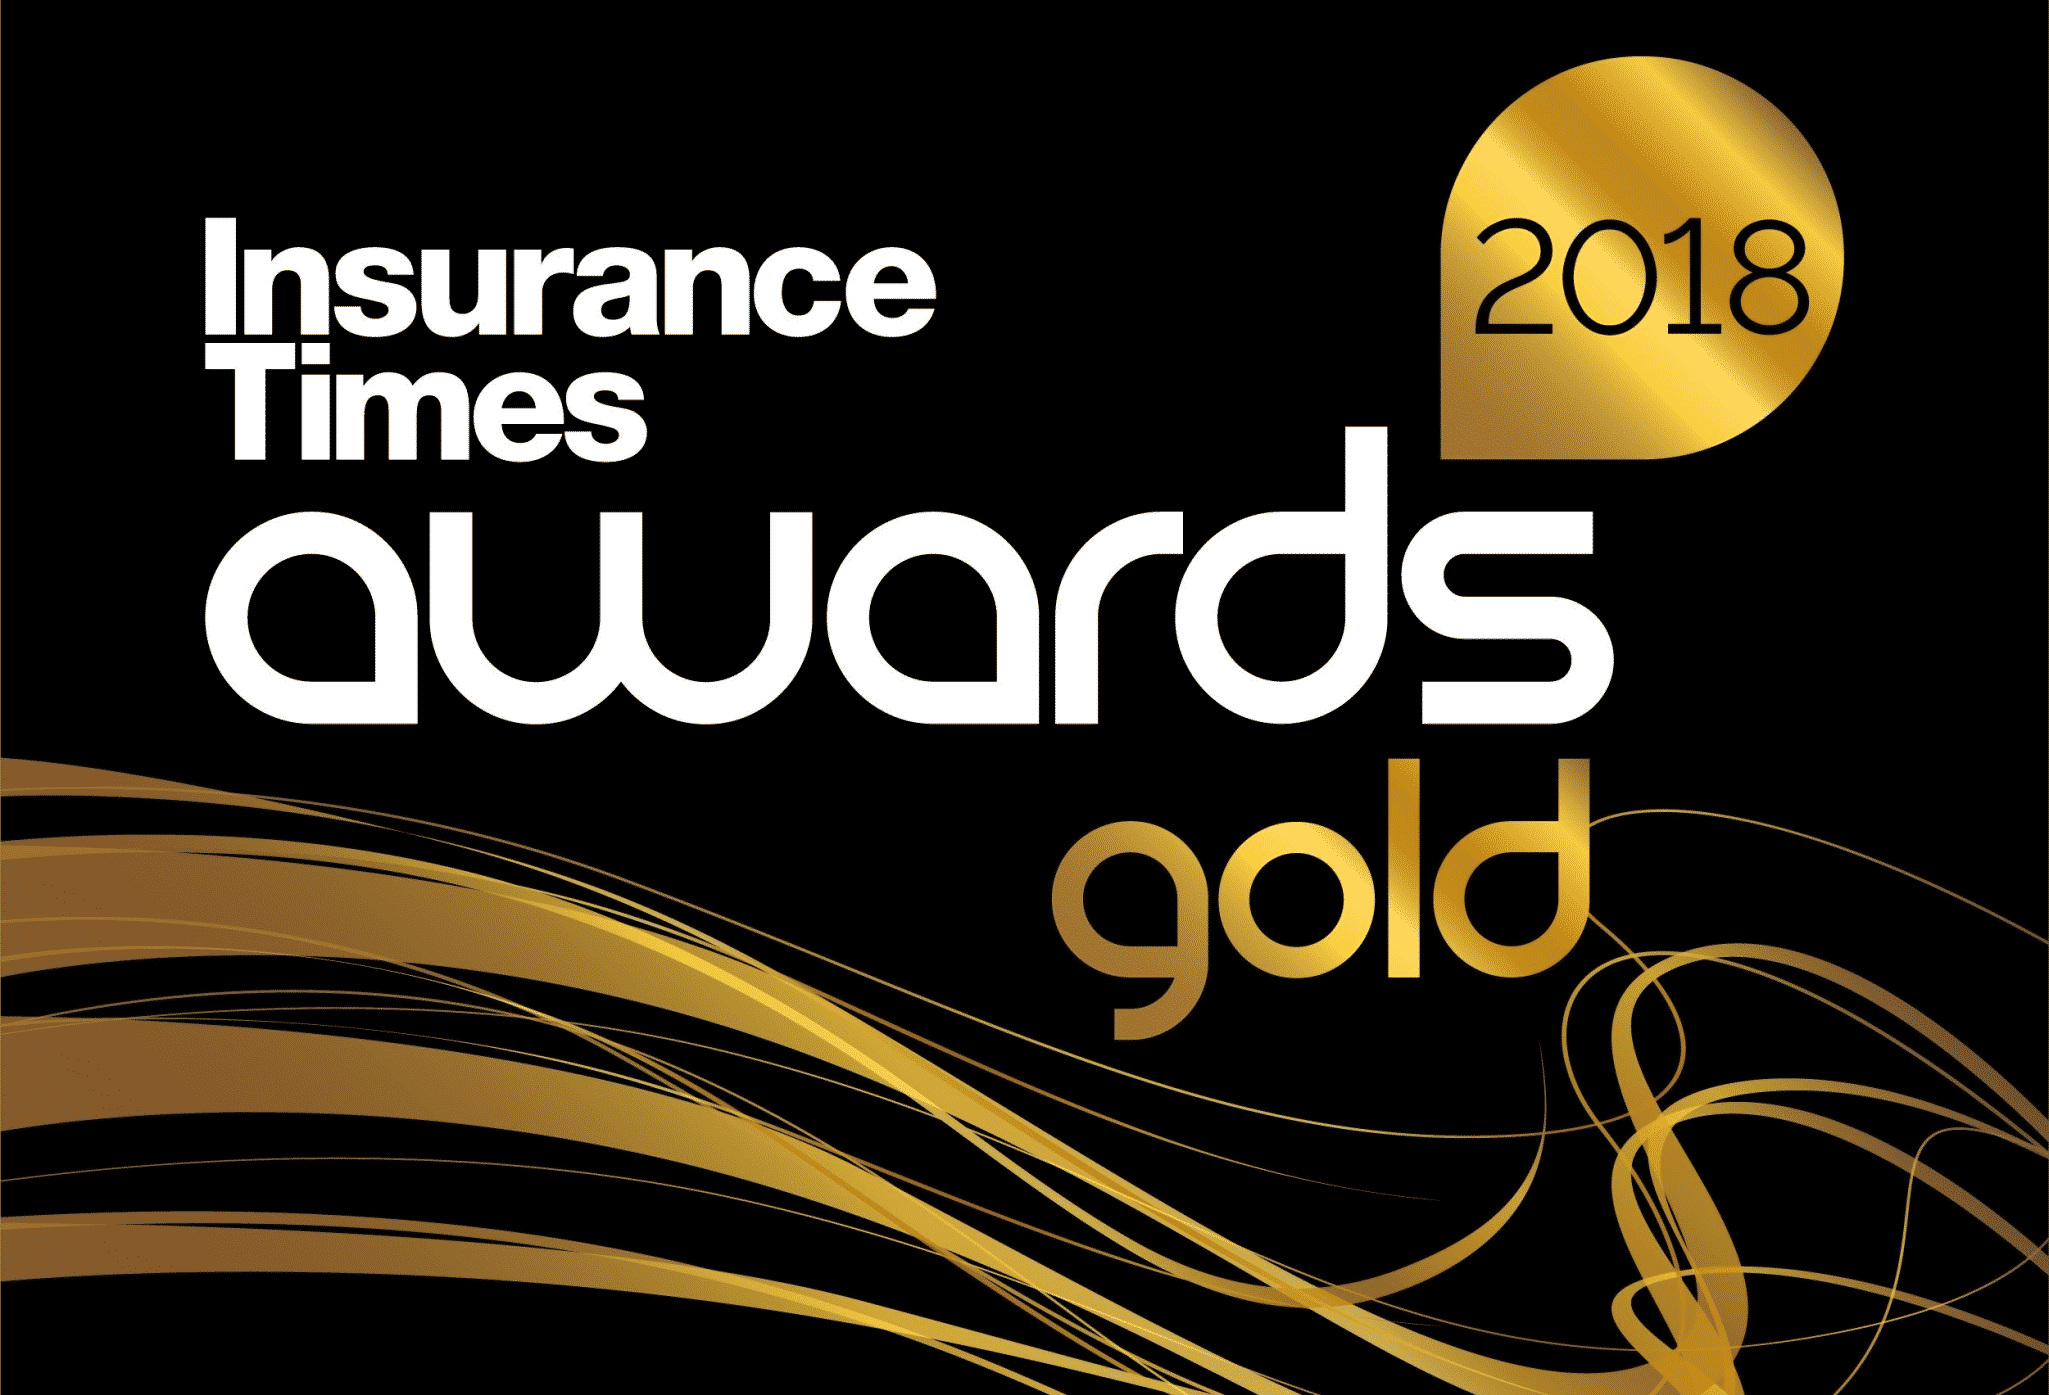 Double award winning AllClear - Gold at industry awards!: Gold logo for AllClear at Insurance Times Awards